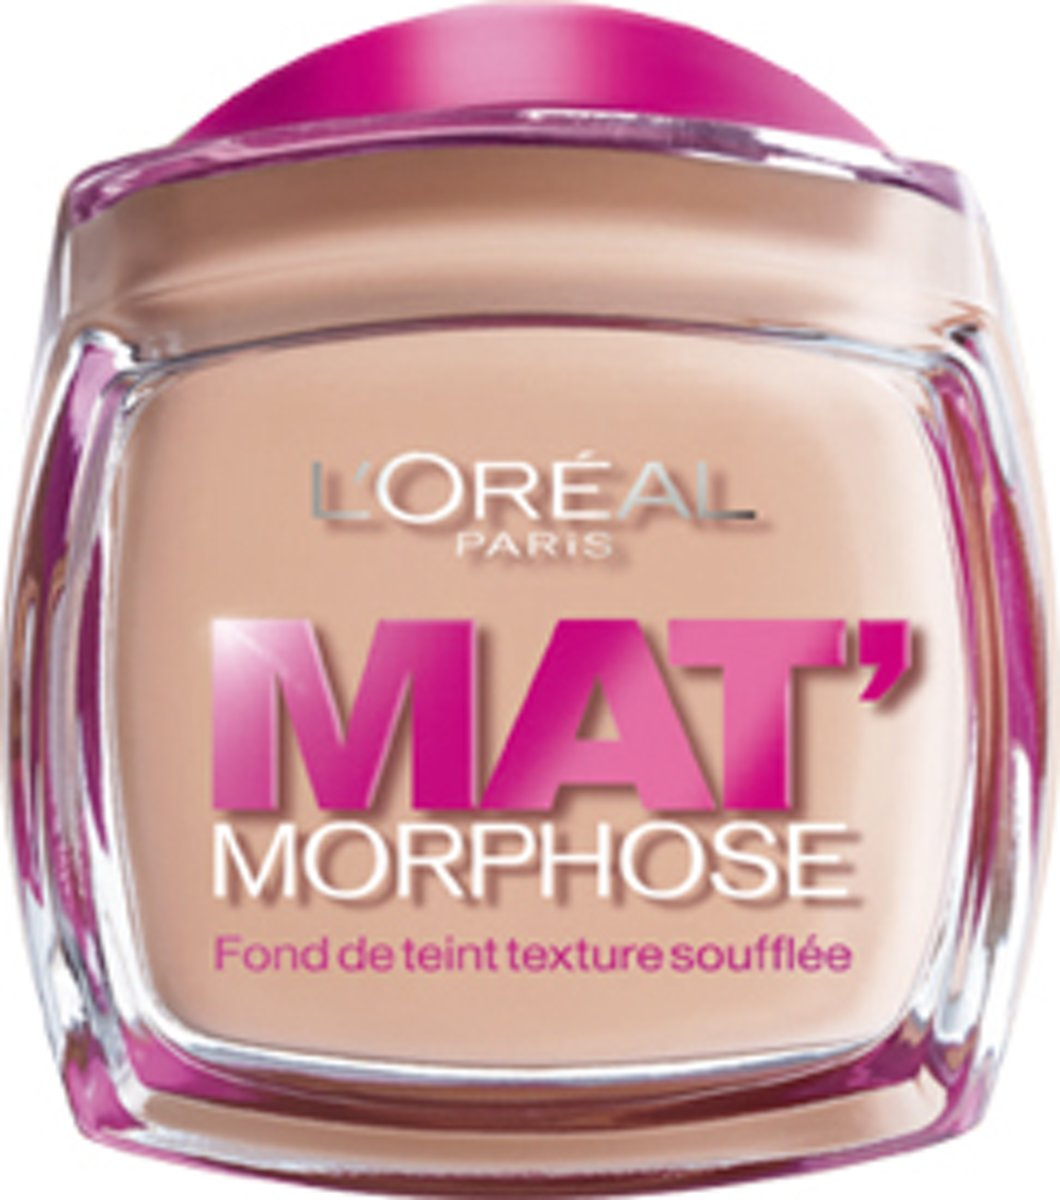 Loreal Paris Matte Morphose Foundation - Ivoire Rose 110